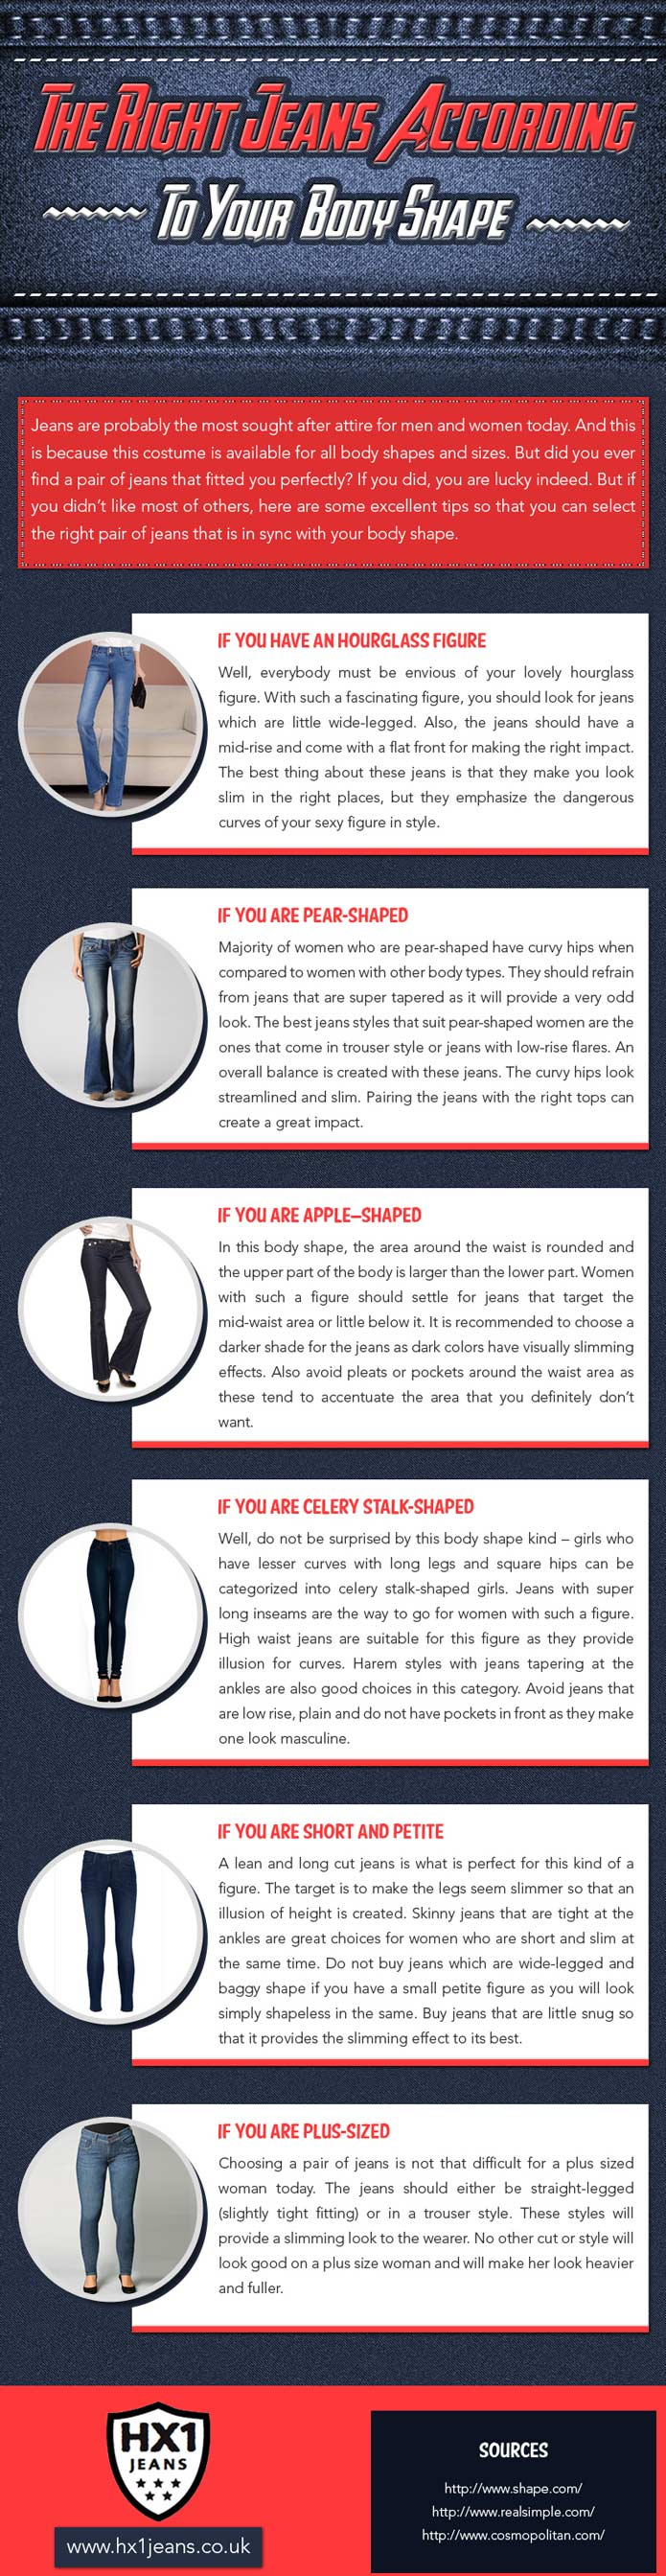 Right-Jeans-According-To-Your-Body-Shape